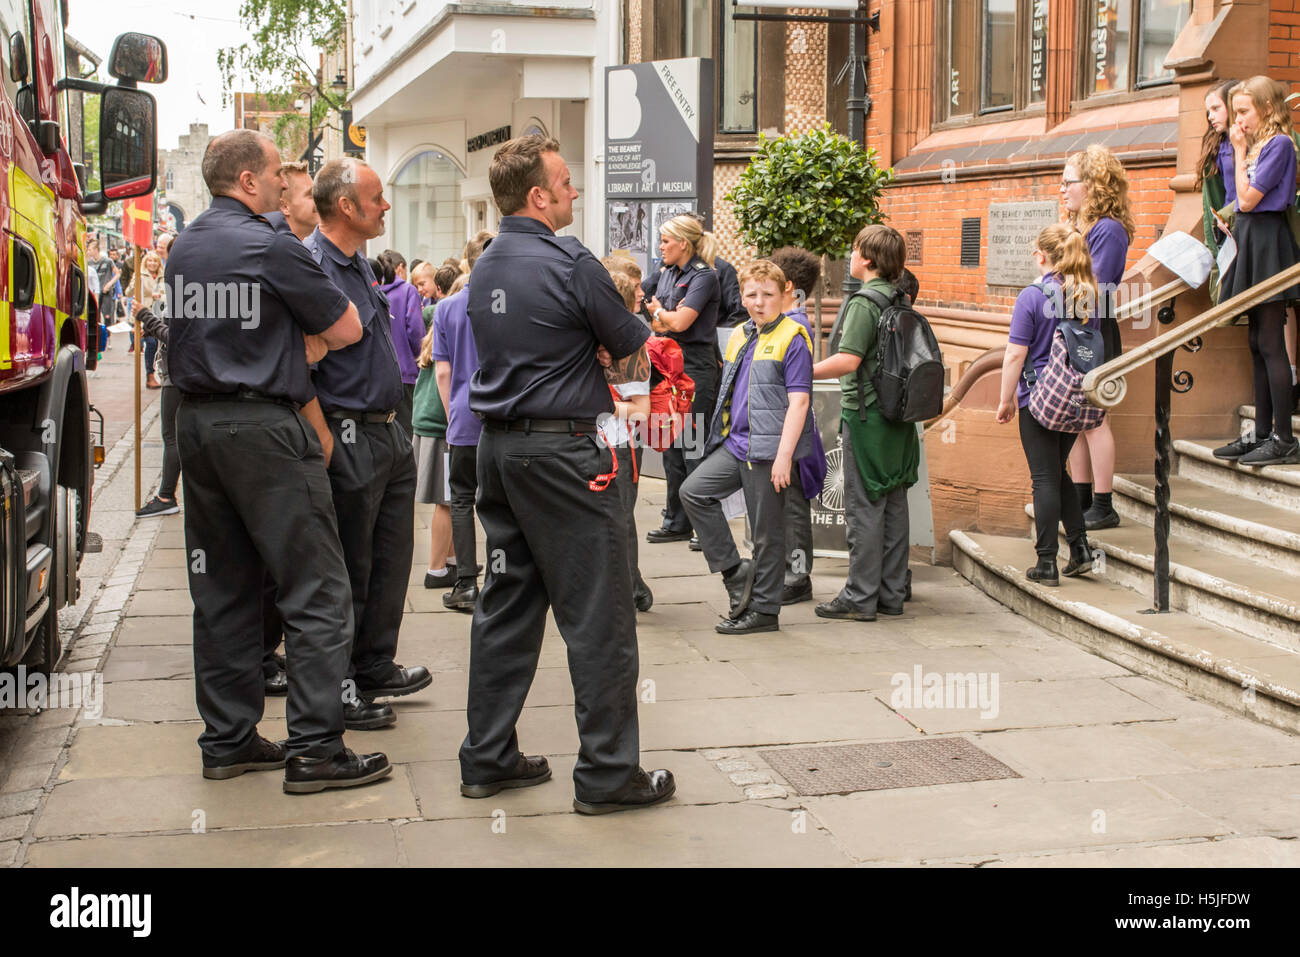 Canterbury, Kent, UK,  20 May 2016. Children being evacuated from the Beaney Library in the town centre under the - Stock Image